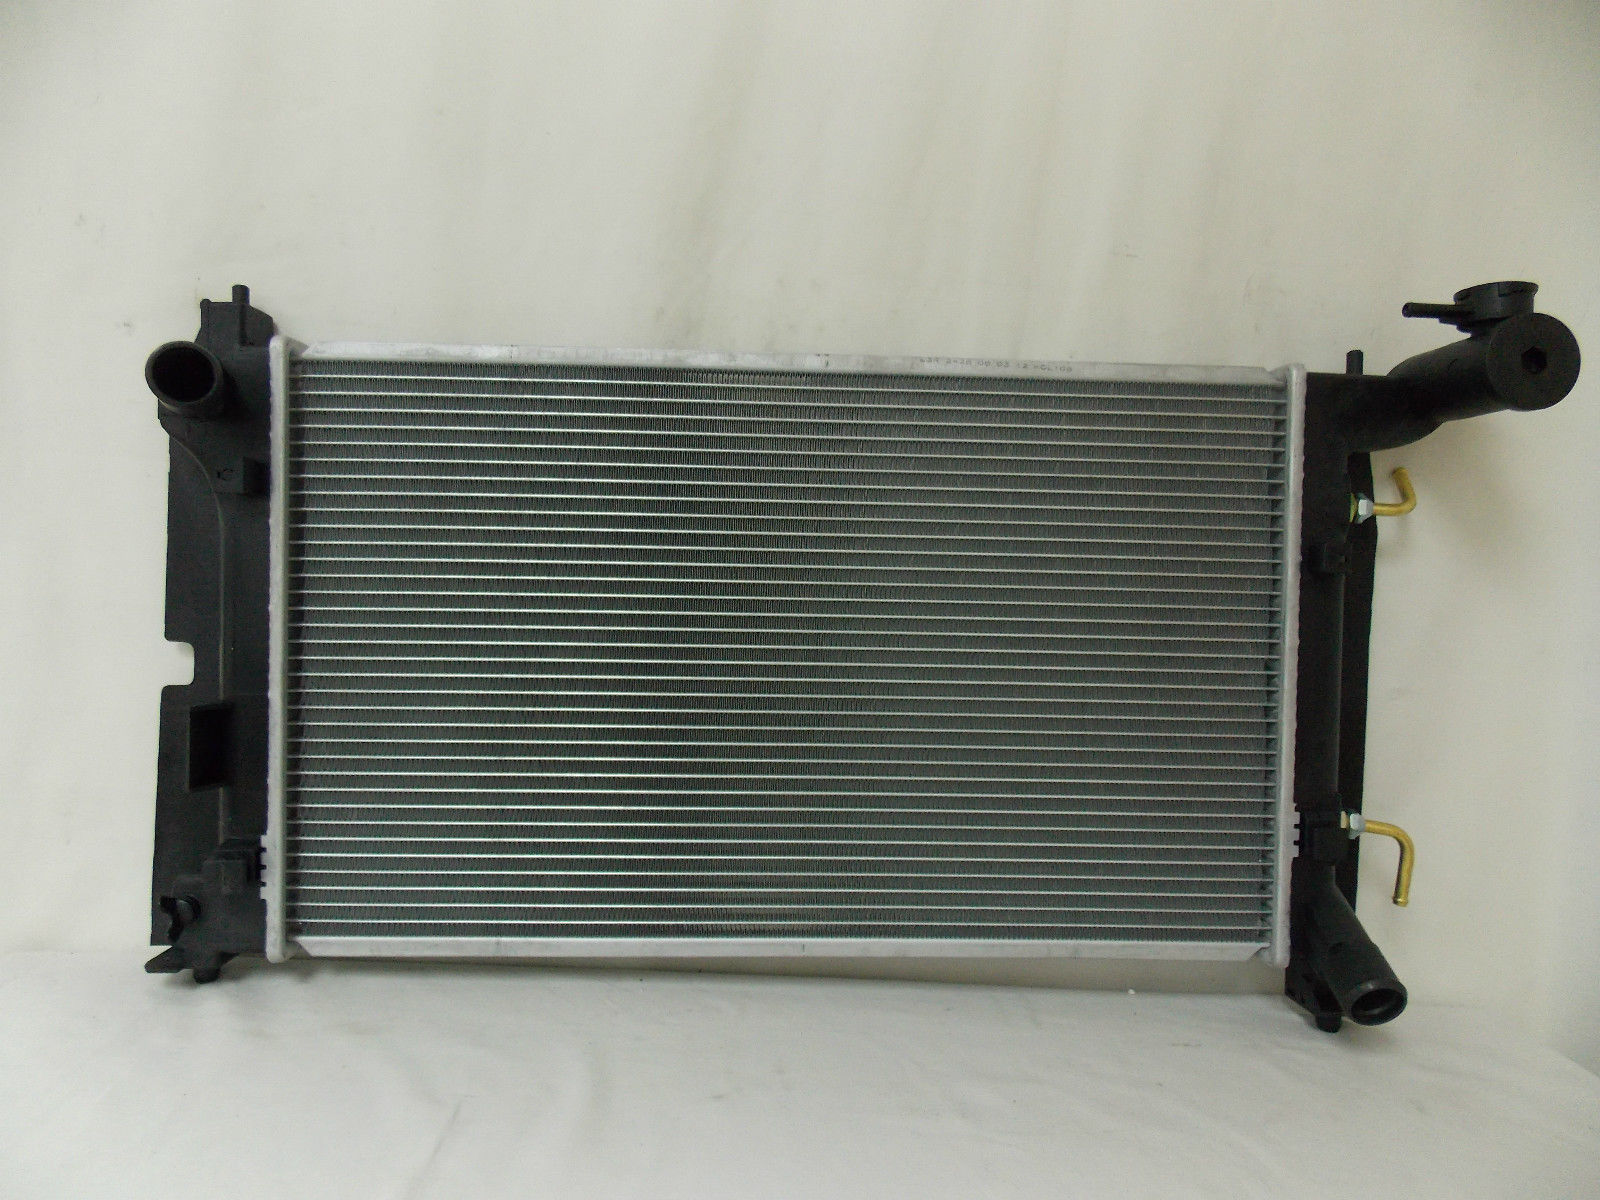 hight resolution of awesome radiator for 2003 2004 2005 2006 2007 2008 toyota corolla 1 8 4cyl 2018